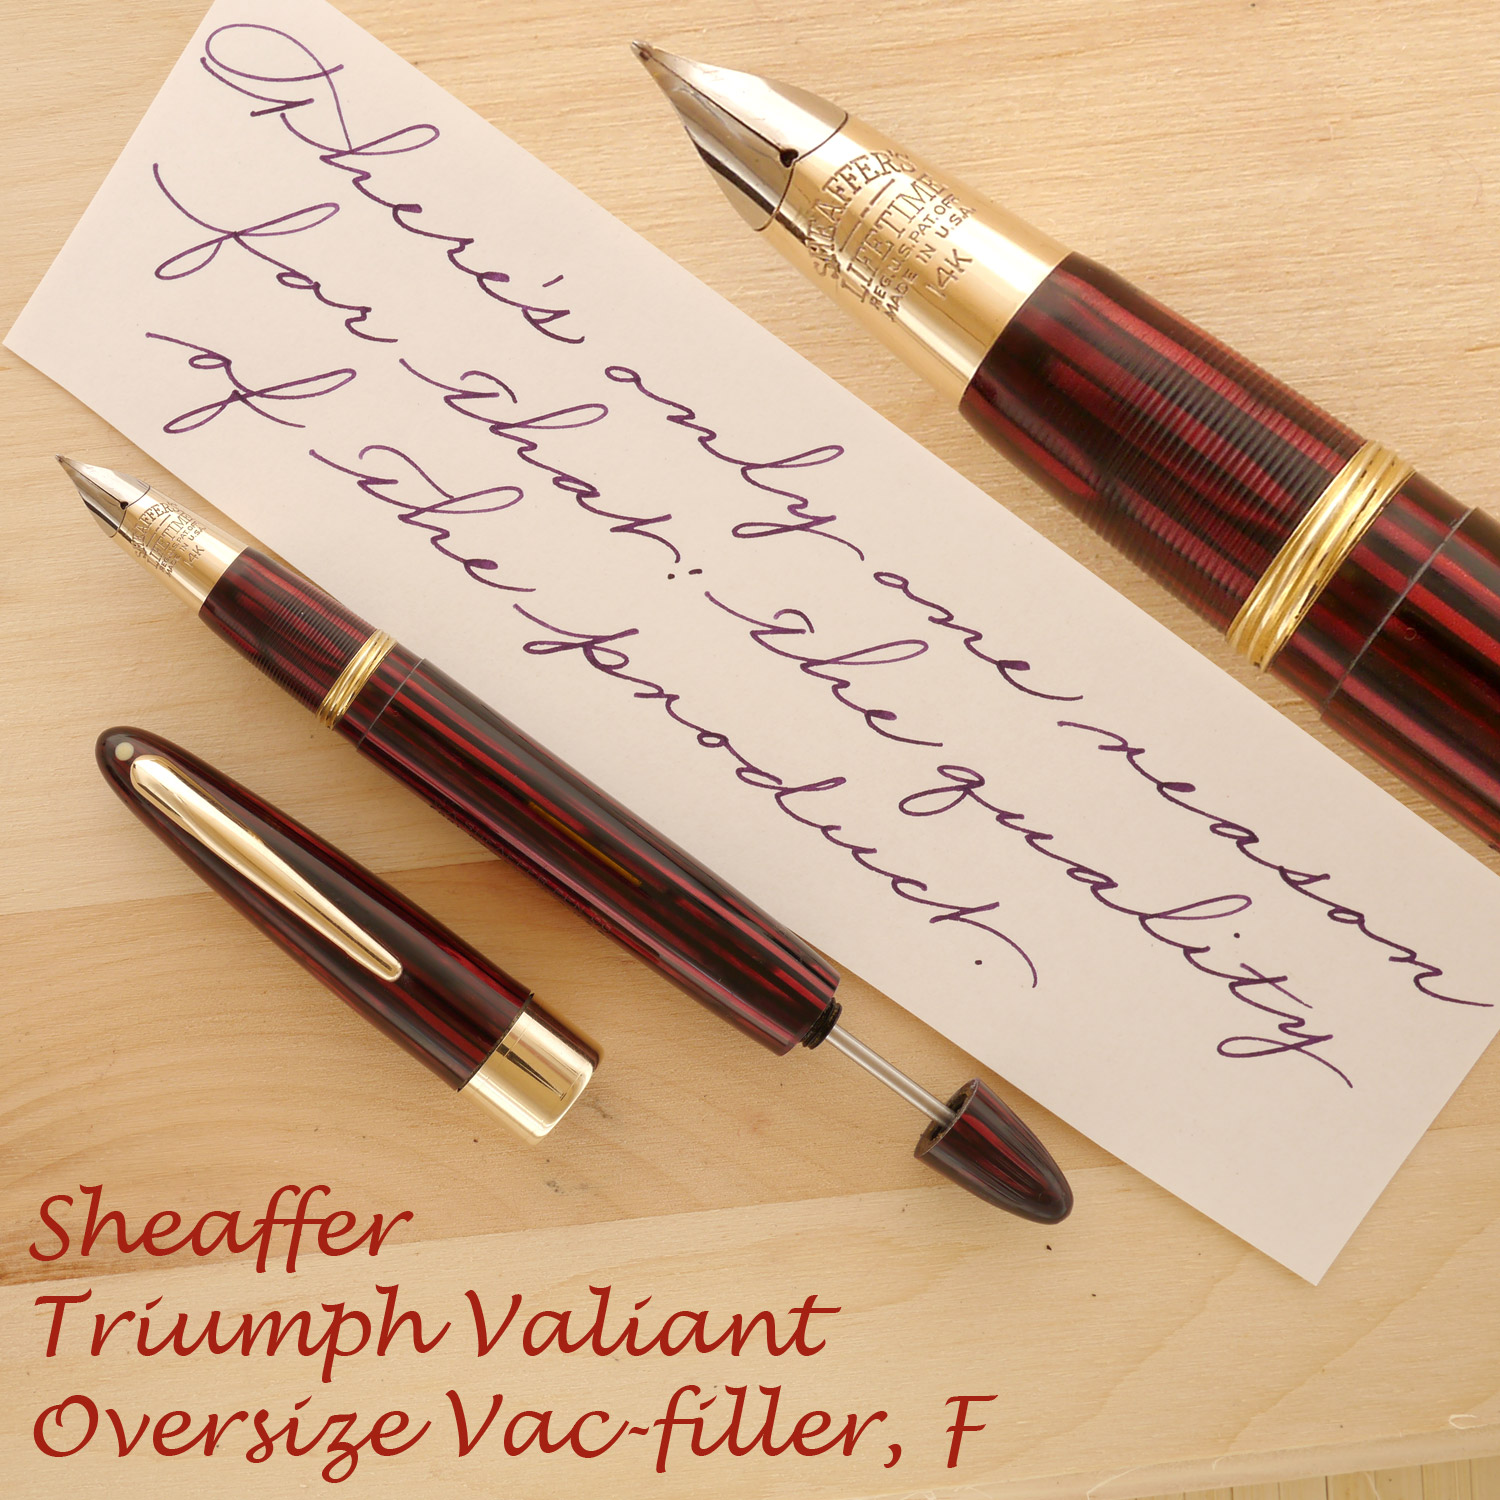 Sheaffer Triumph Valiant Vac Oversize Carmine, F, uncapped, with the plunger partially extended